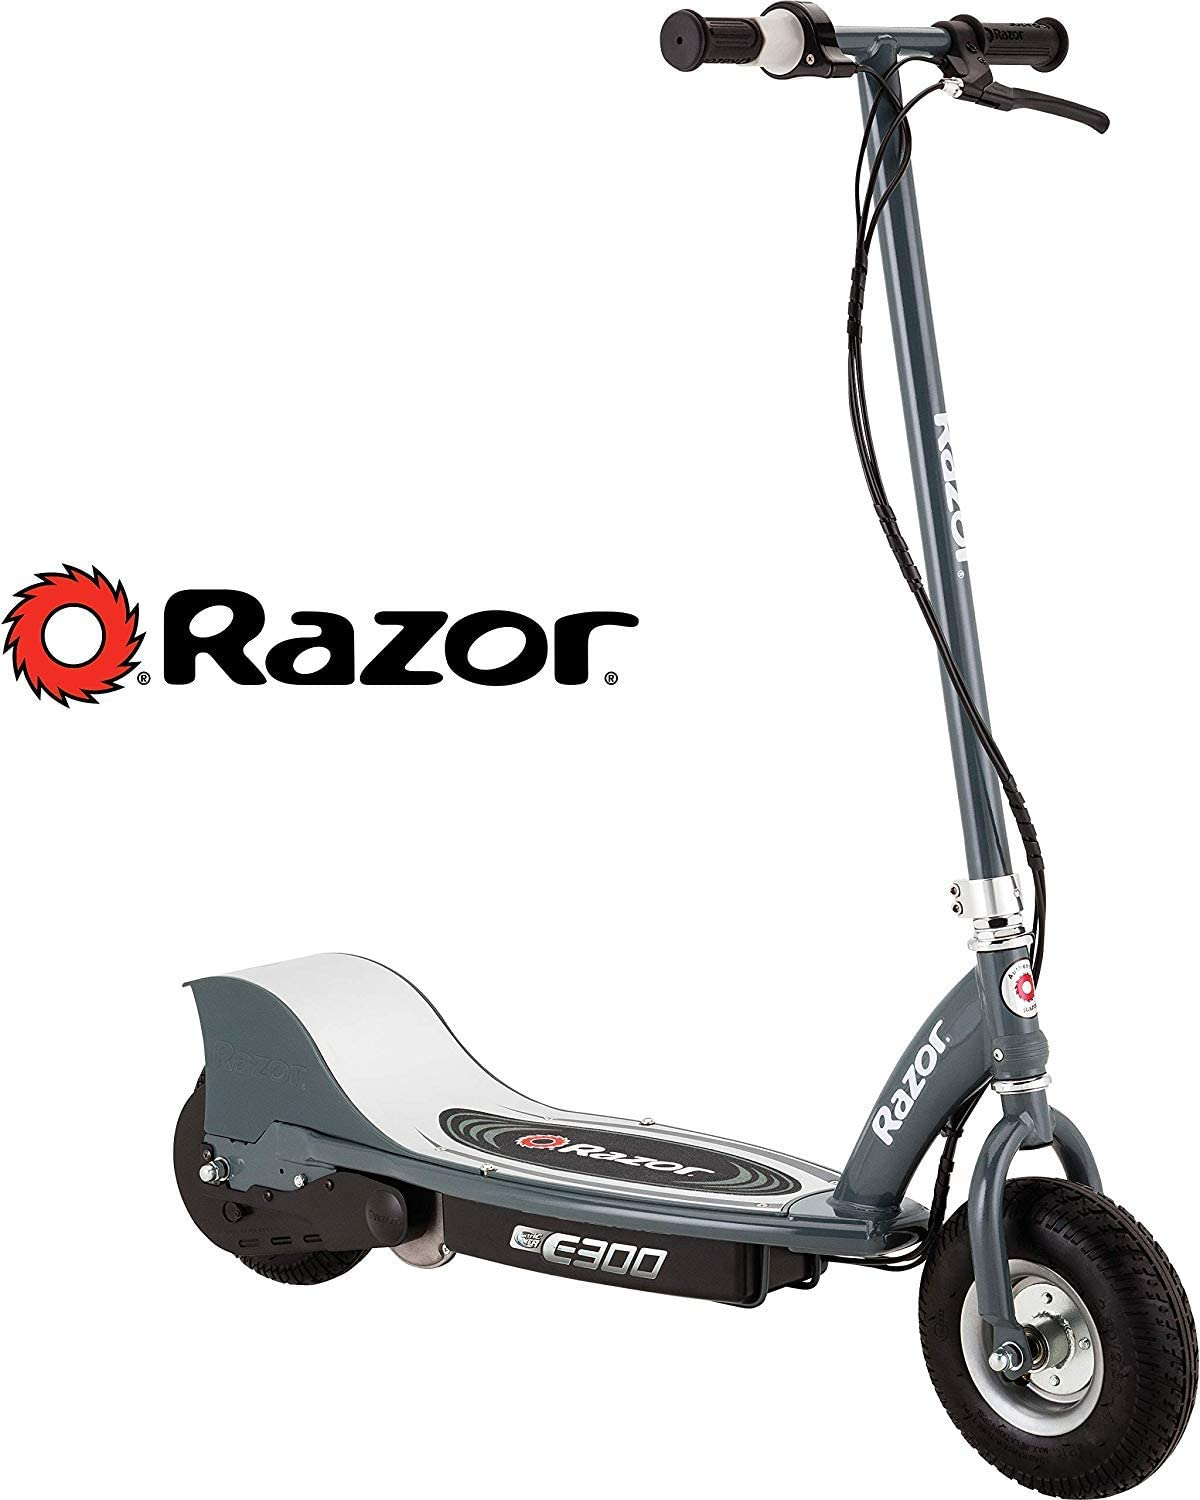 best electric scooter for climbing hills: Razor E300 Electric Scooter